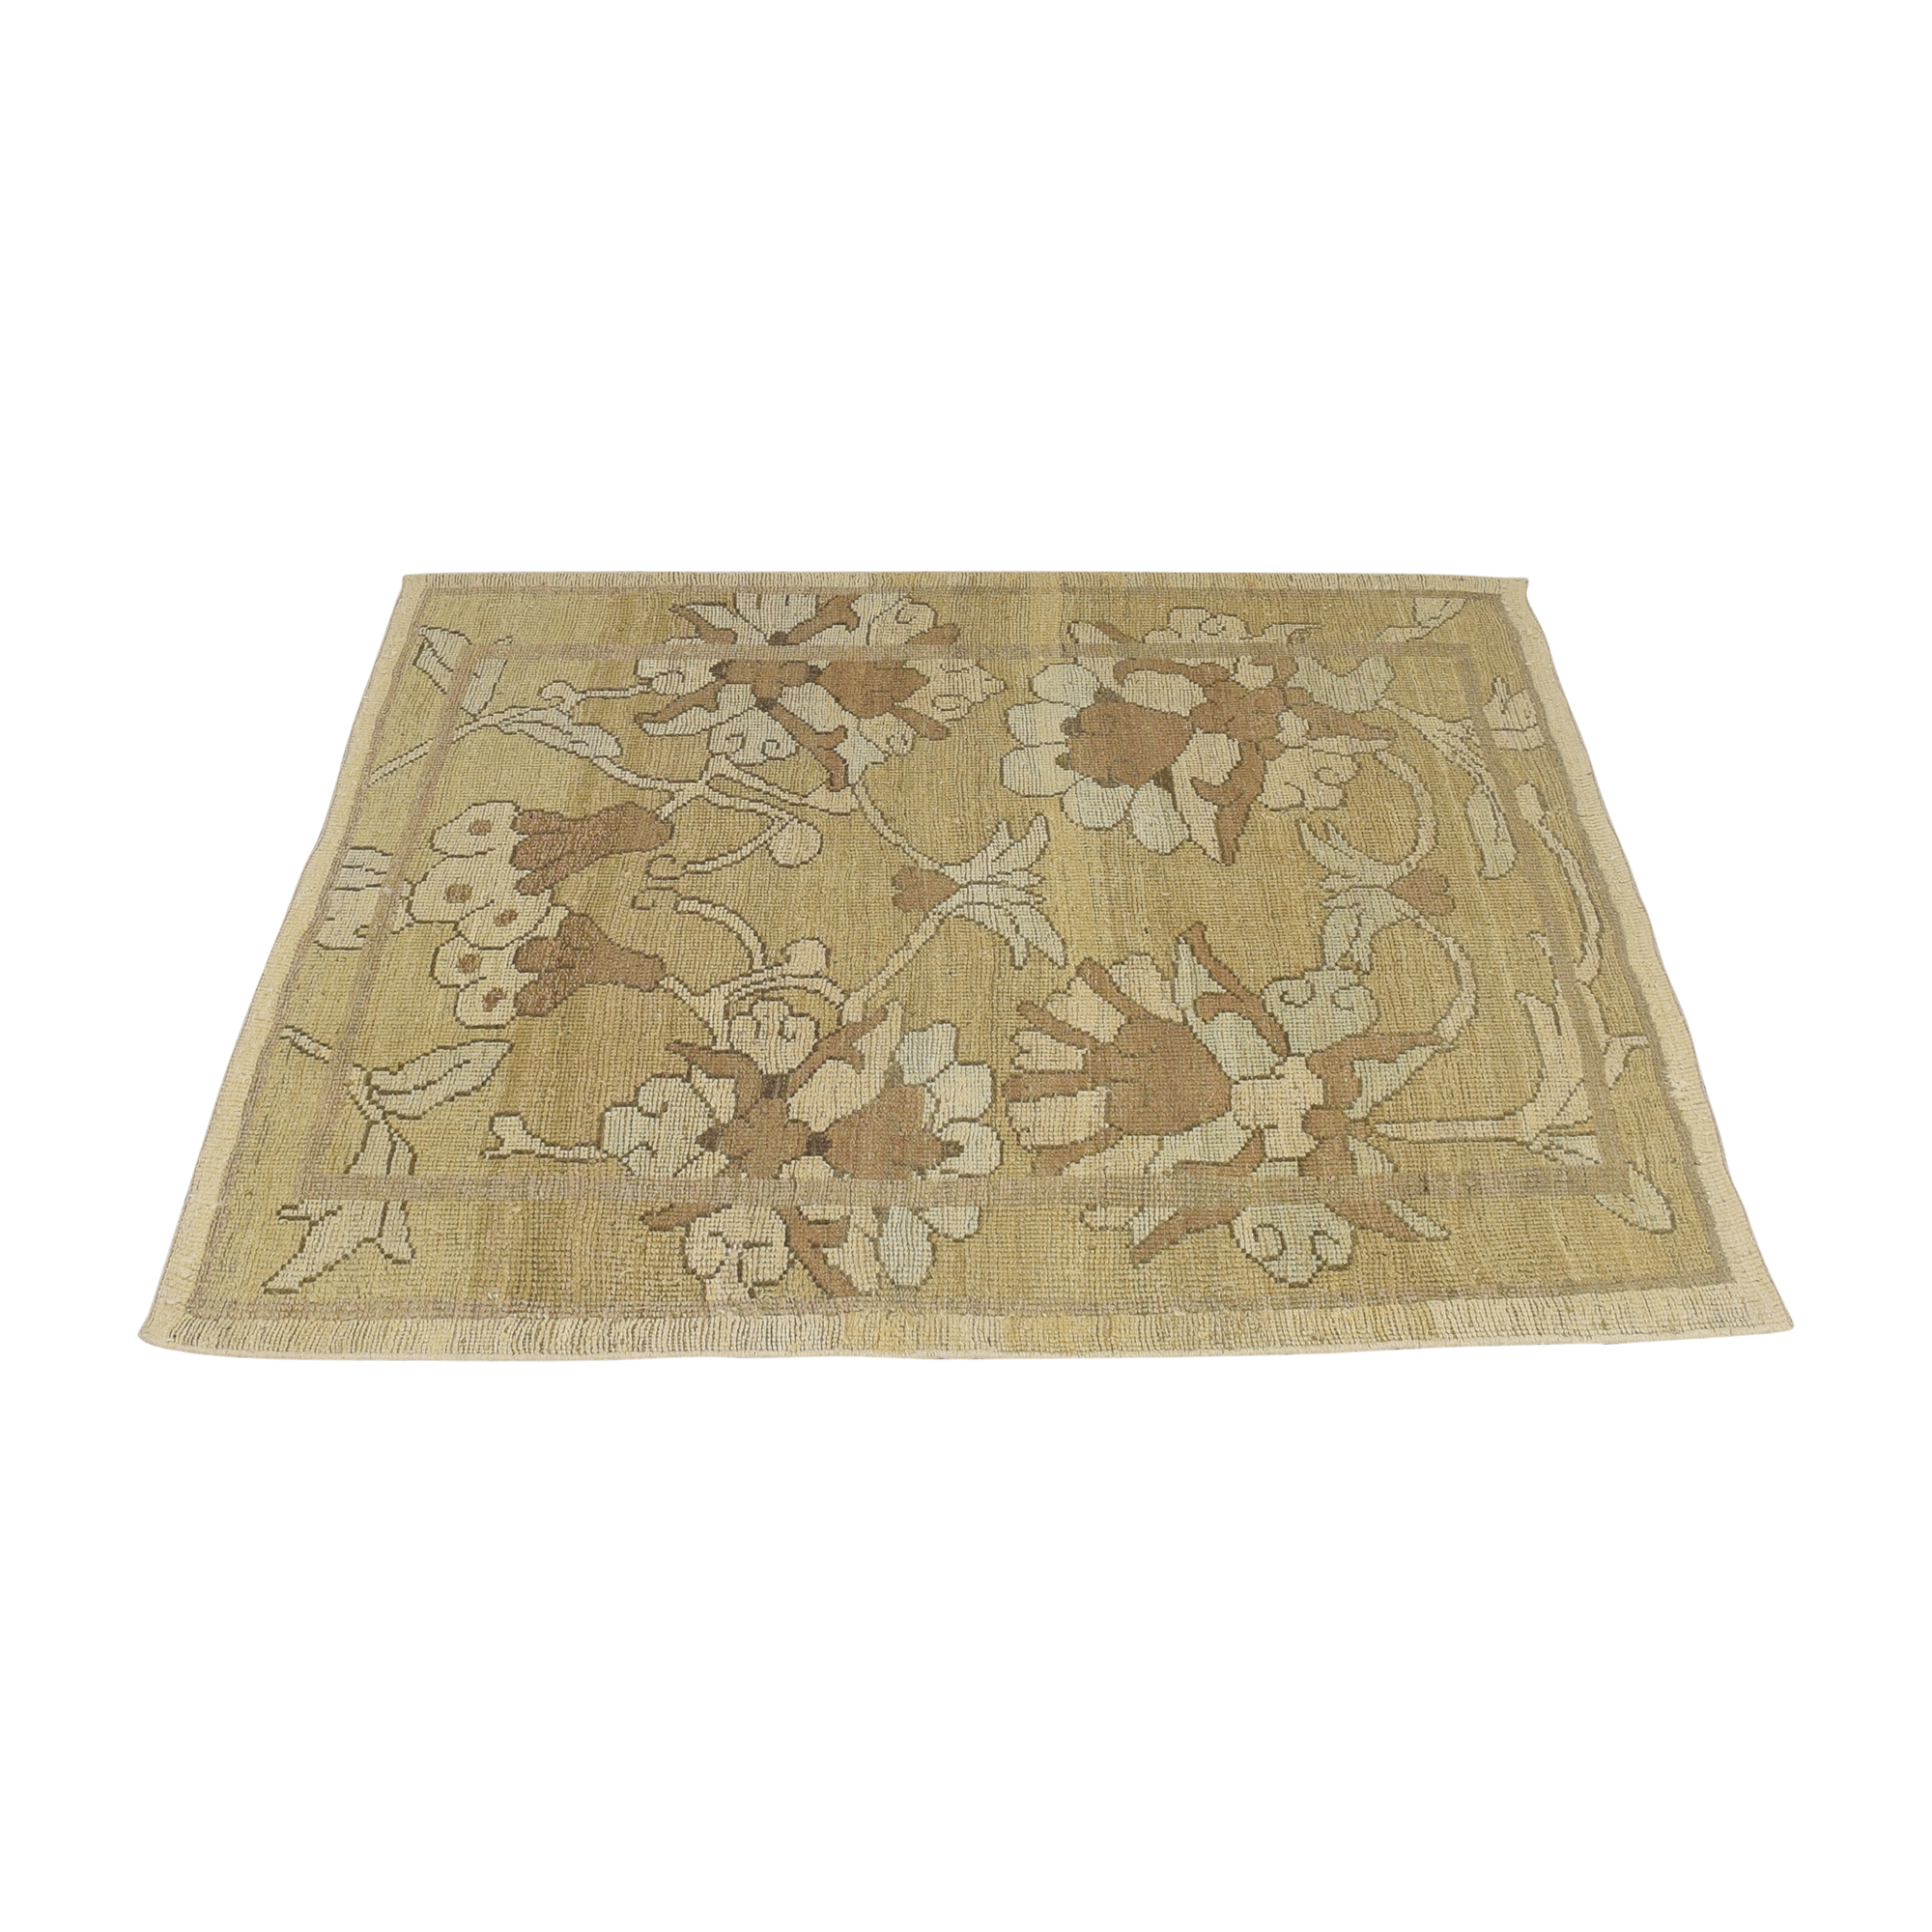 ABC Carpet & Home Patterned Area Rug ABC Carpet & Home